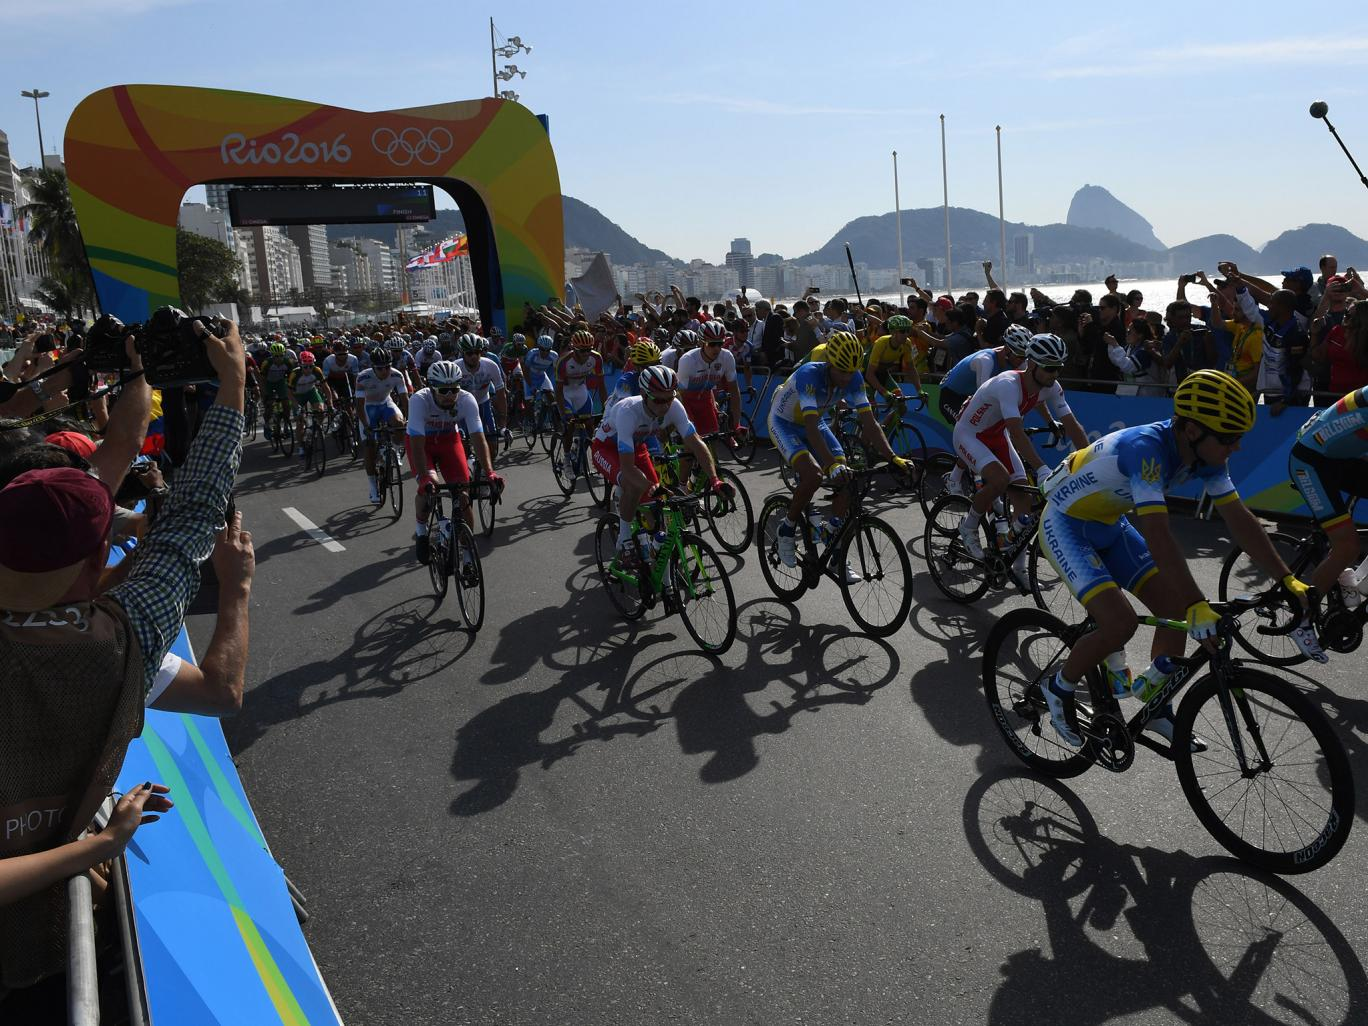 A controlled explosion by Brazil's anti-bomb squad took place near the finish line Getty